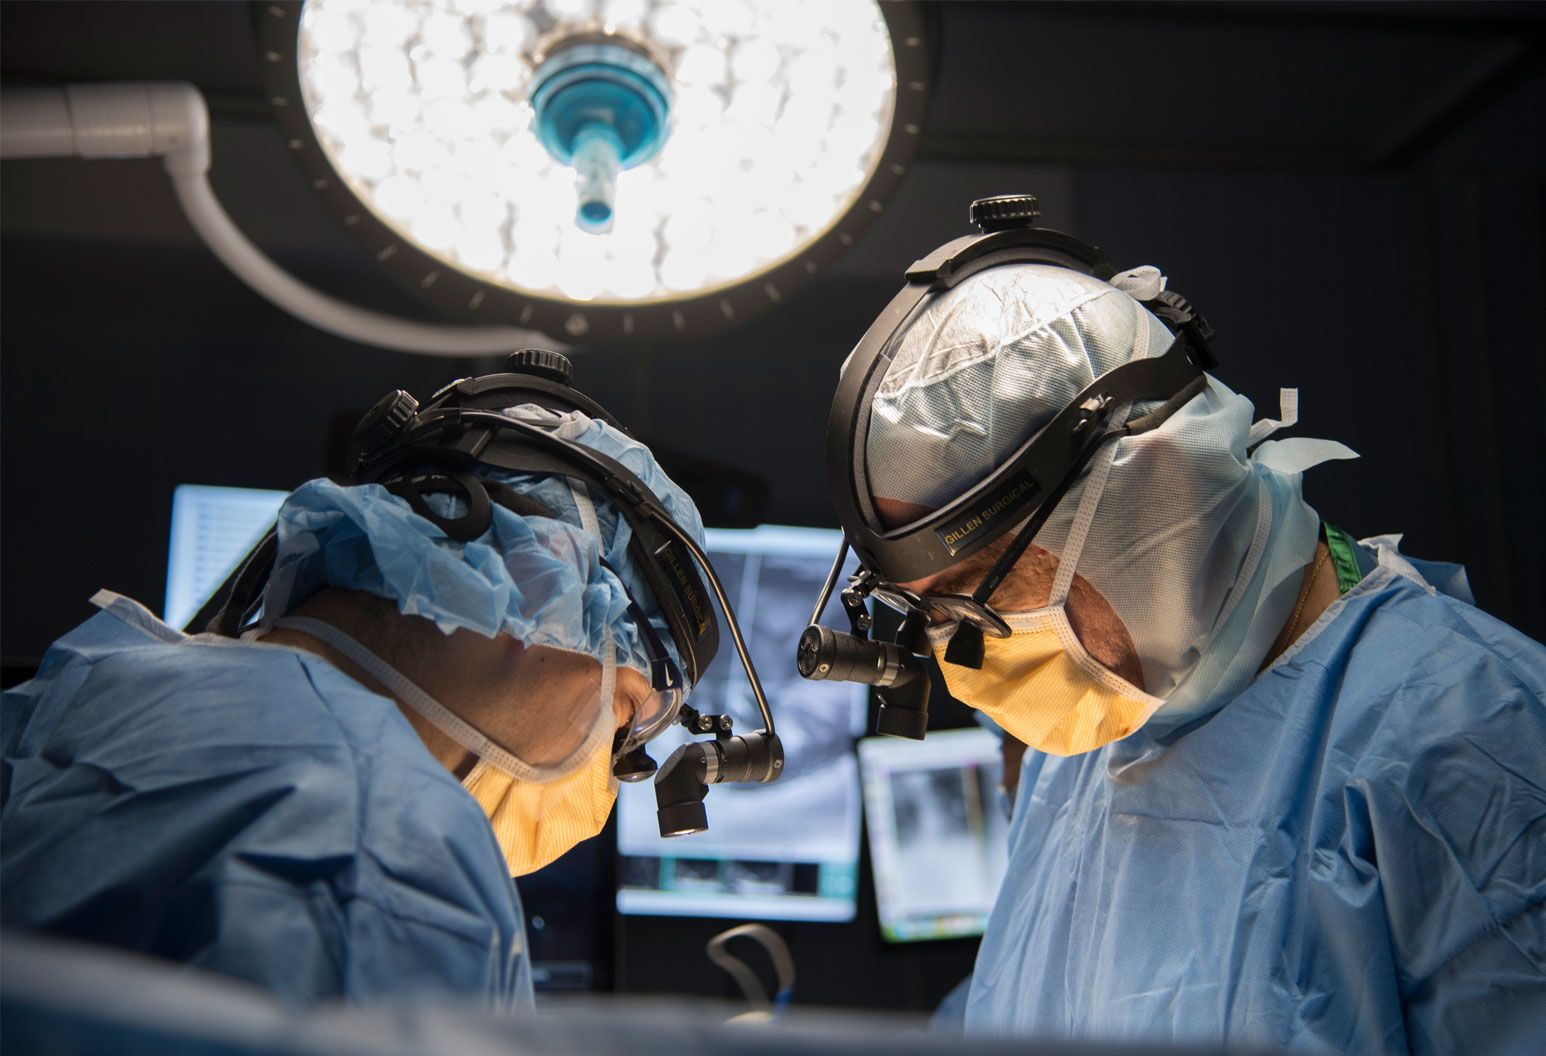 Two surgeons wearing scrubs, masks and eye magnifying glasses perform surgery.